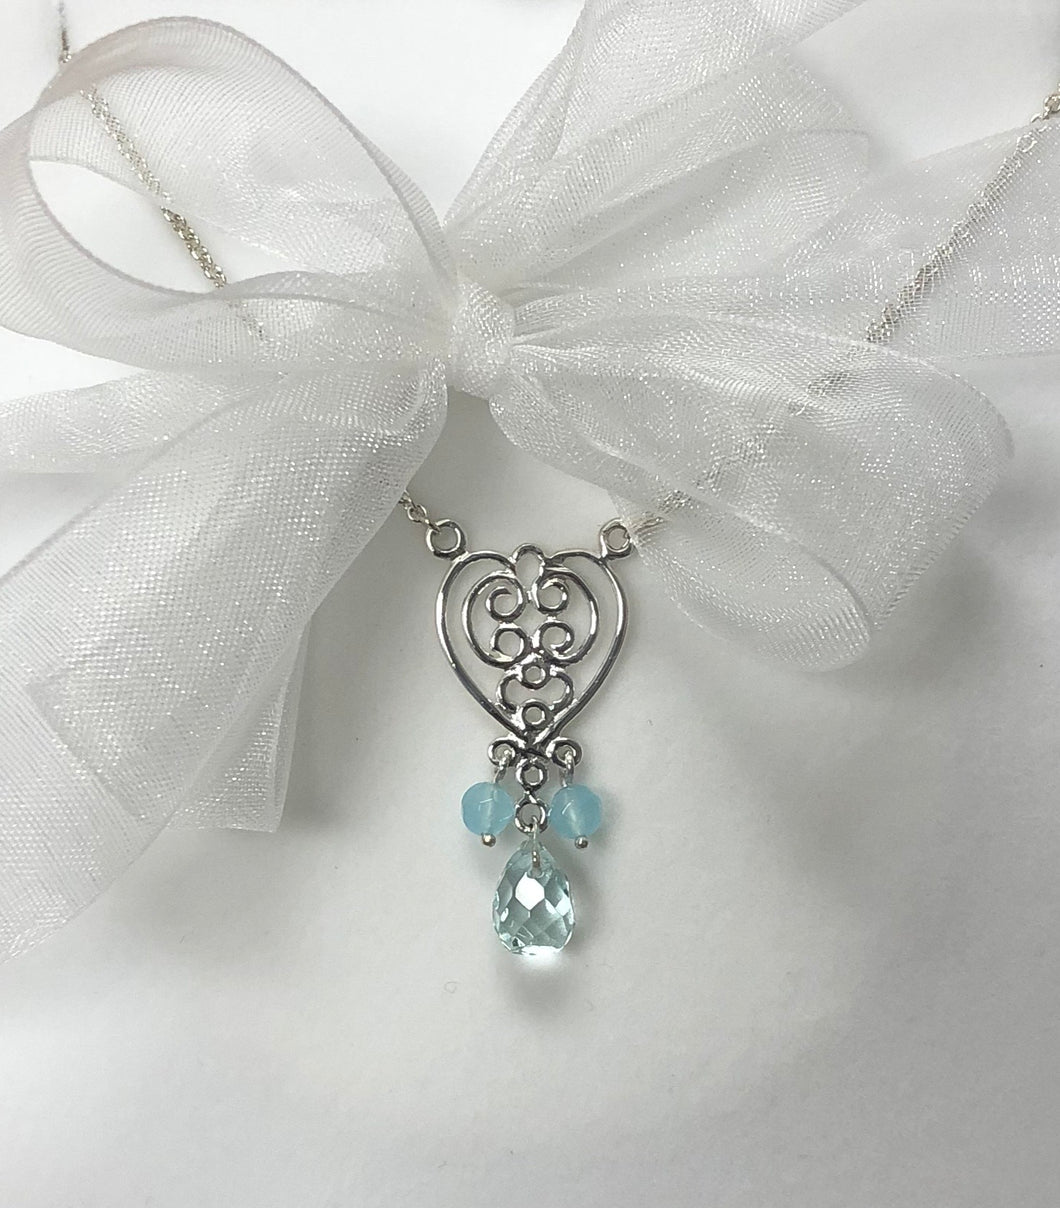 Aqua Crystal Pendant in Sterling Silver